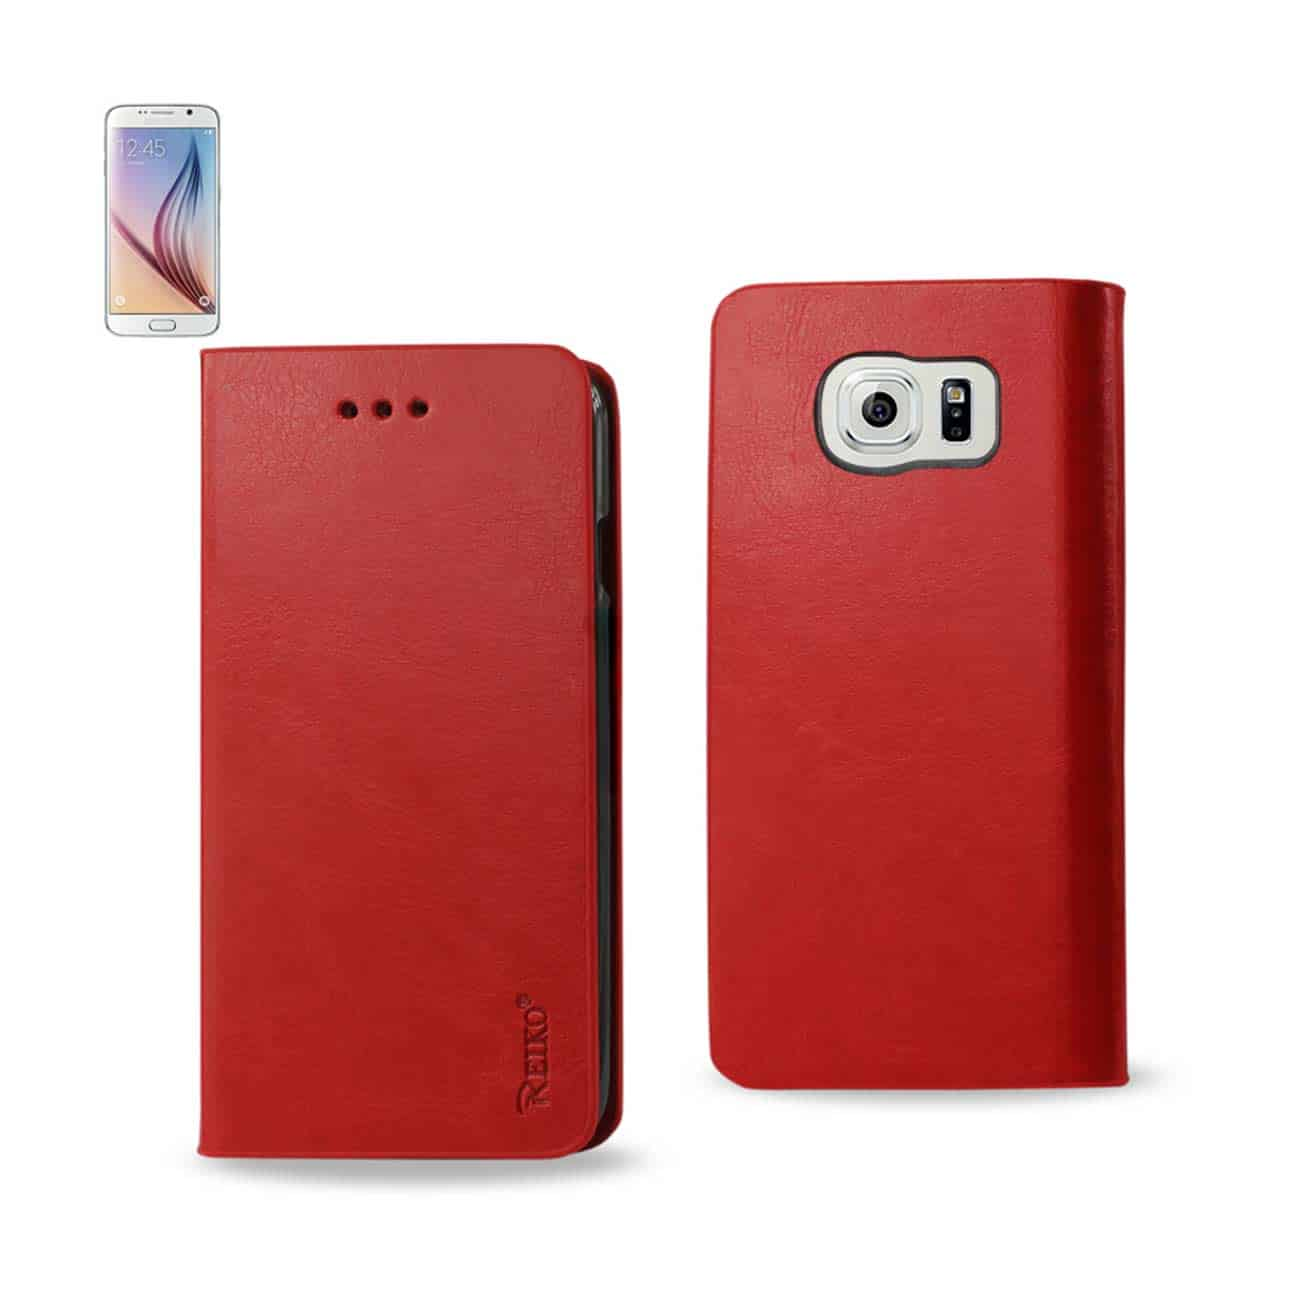 SAMSUNG GALAXY S6 FLIP FOLIO CASE WITH CARD HOLDER IN RED